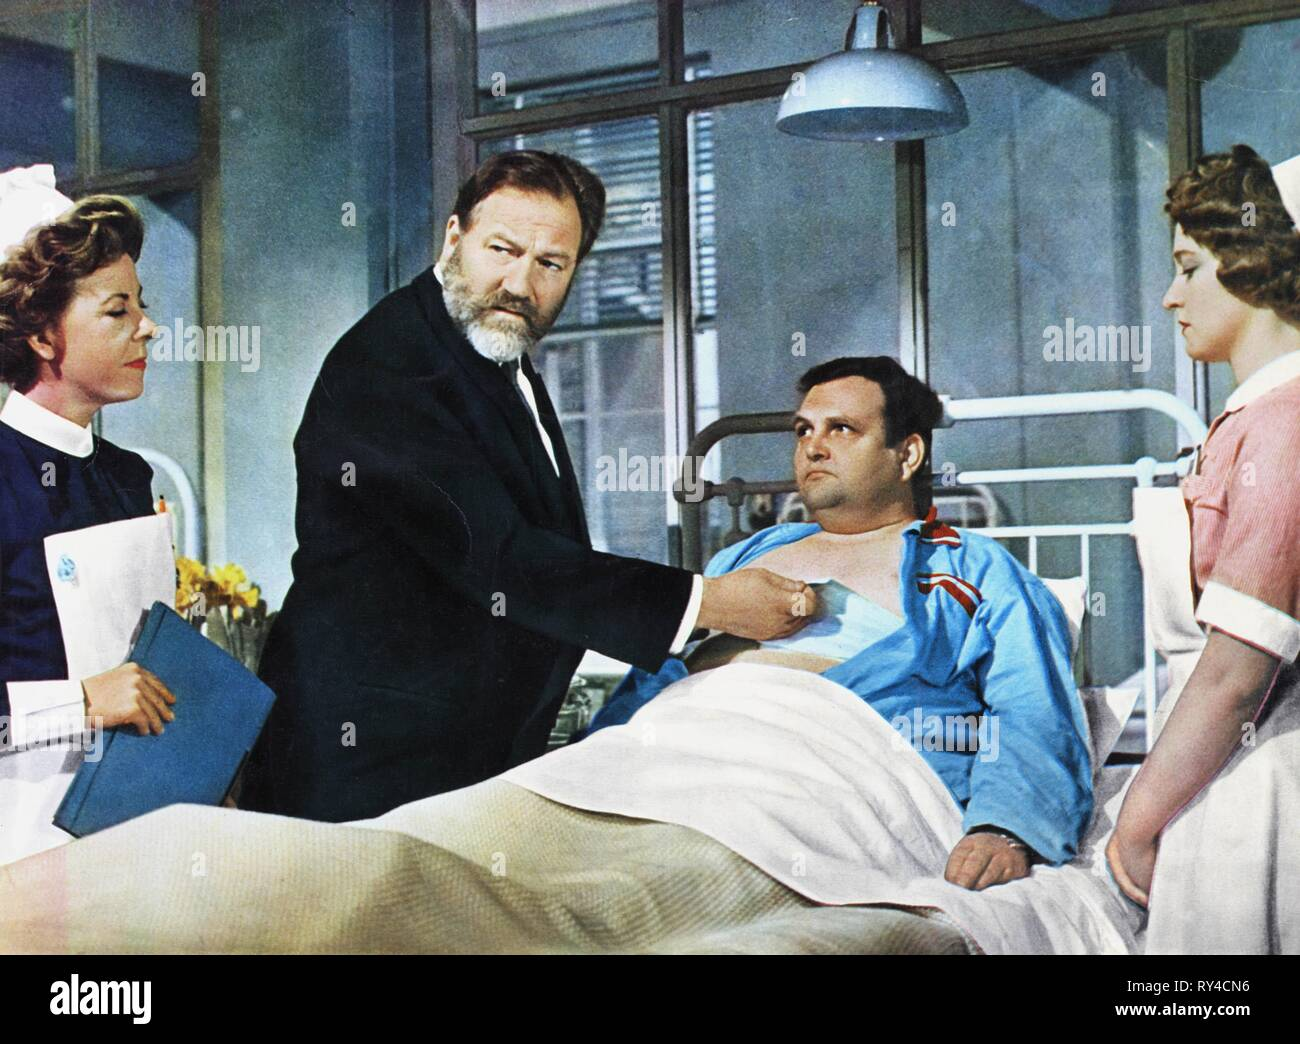 SCENE WITH JAMES ROBERTSON JUSTICE, DOCTOR IN DISTRESS, 1963 - Stock Image